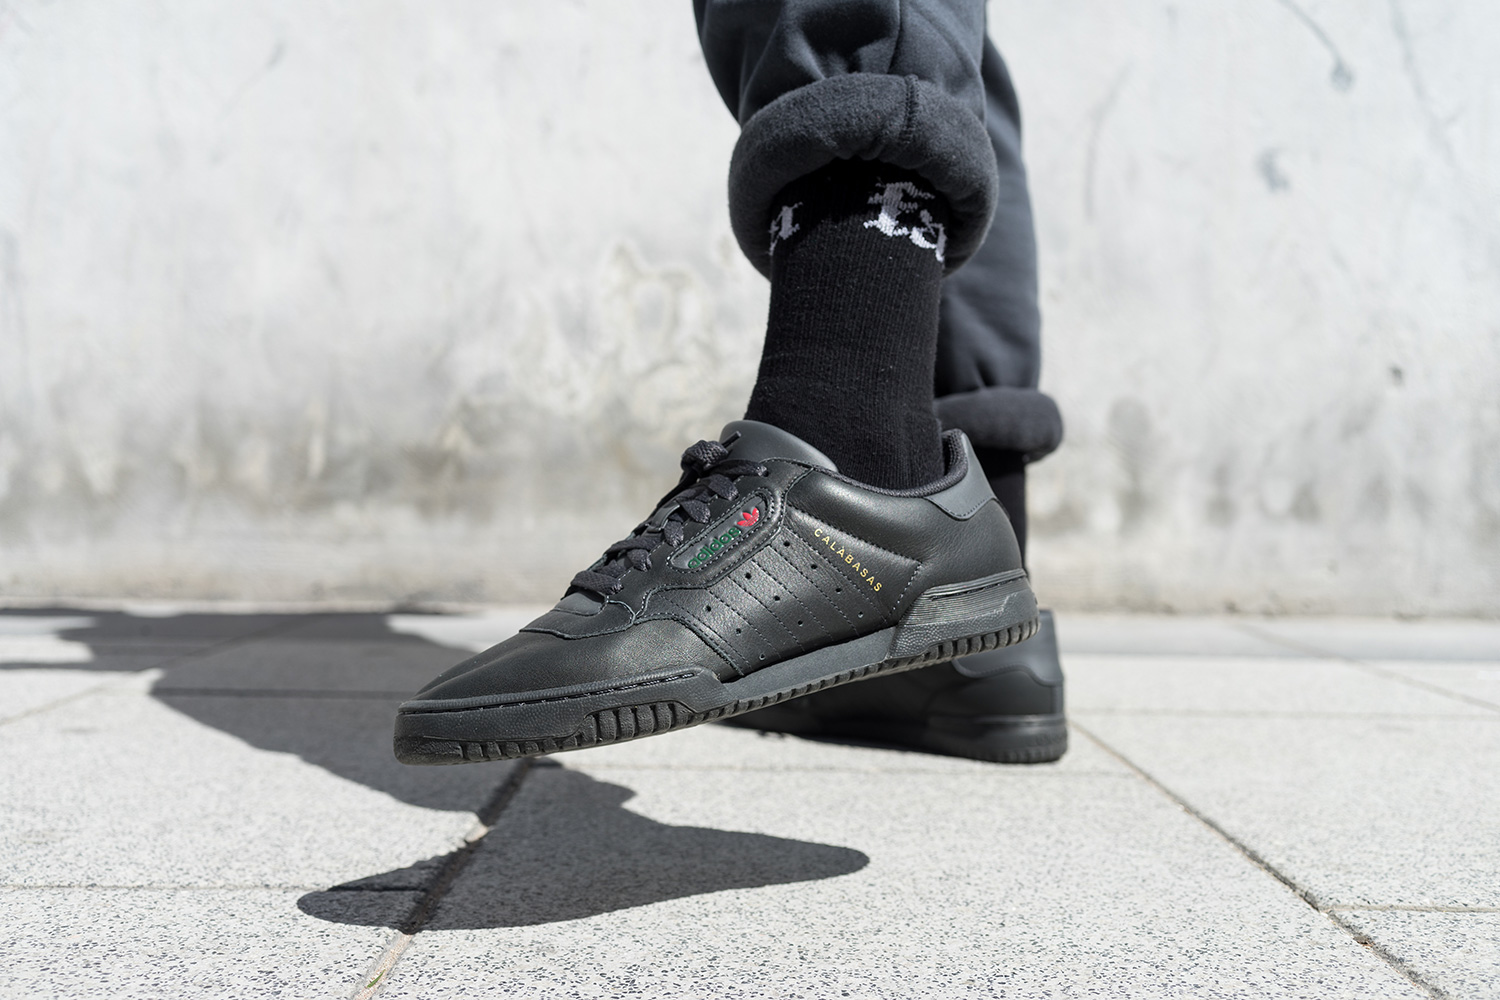 284db41a12375 YEEZY POWERPHASE CORE BLACK - CALABASAS 👑  weeklySNEAKERS 👑 – WAG1  MAGAZINE